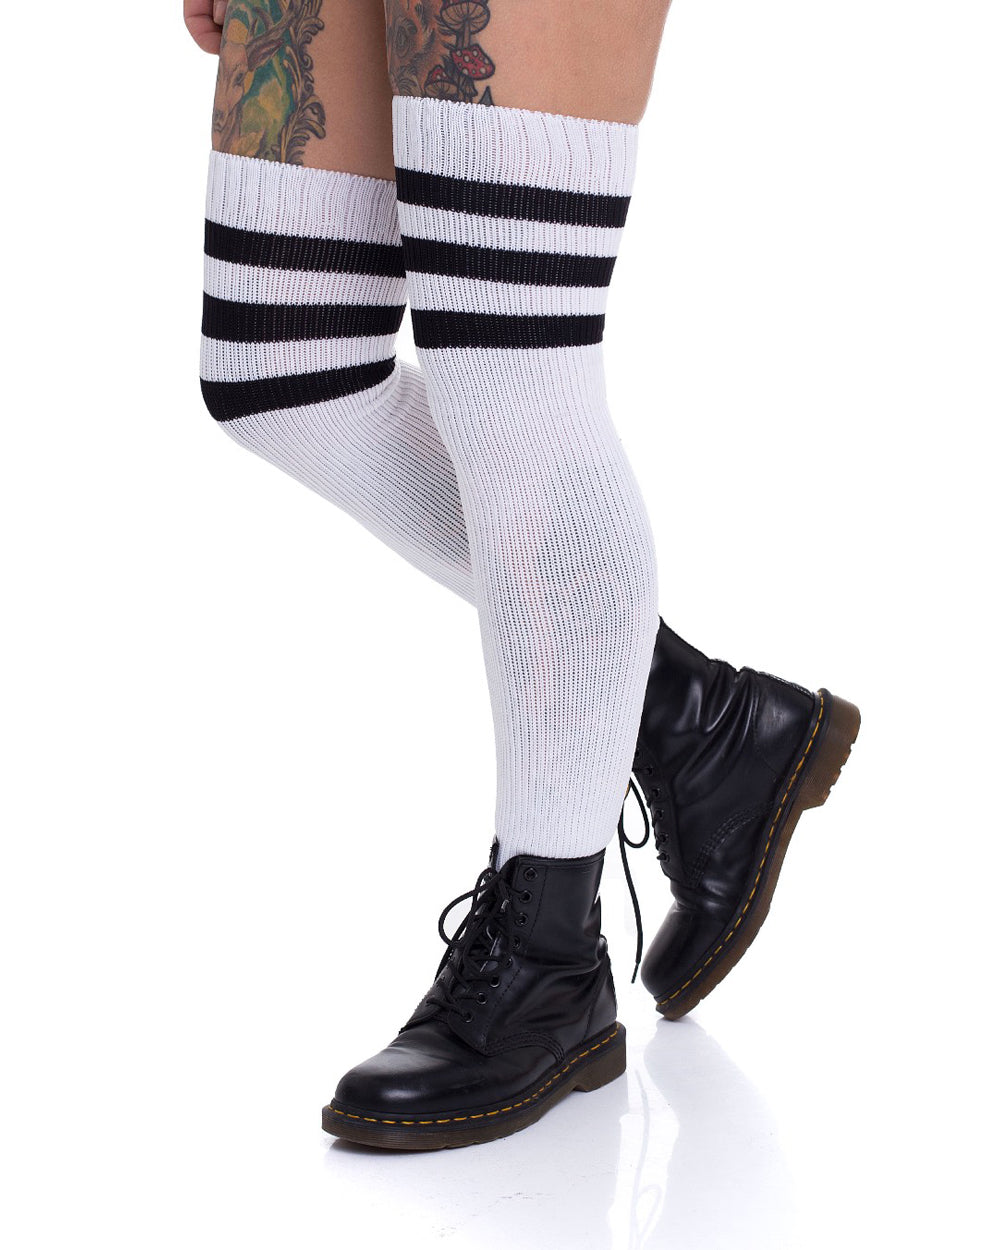 American Socks Old School Ultra-High Socks | Rebel Rebel Bruges